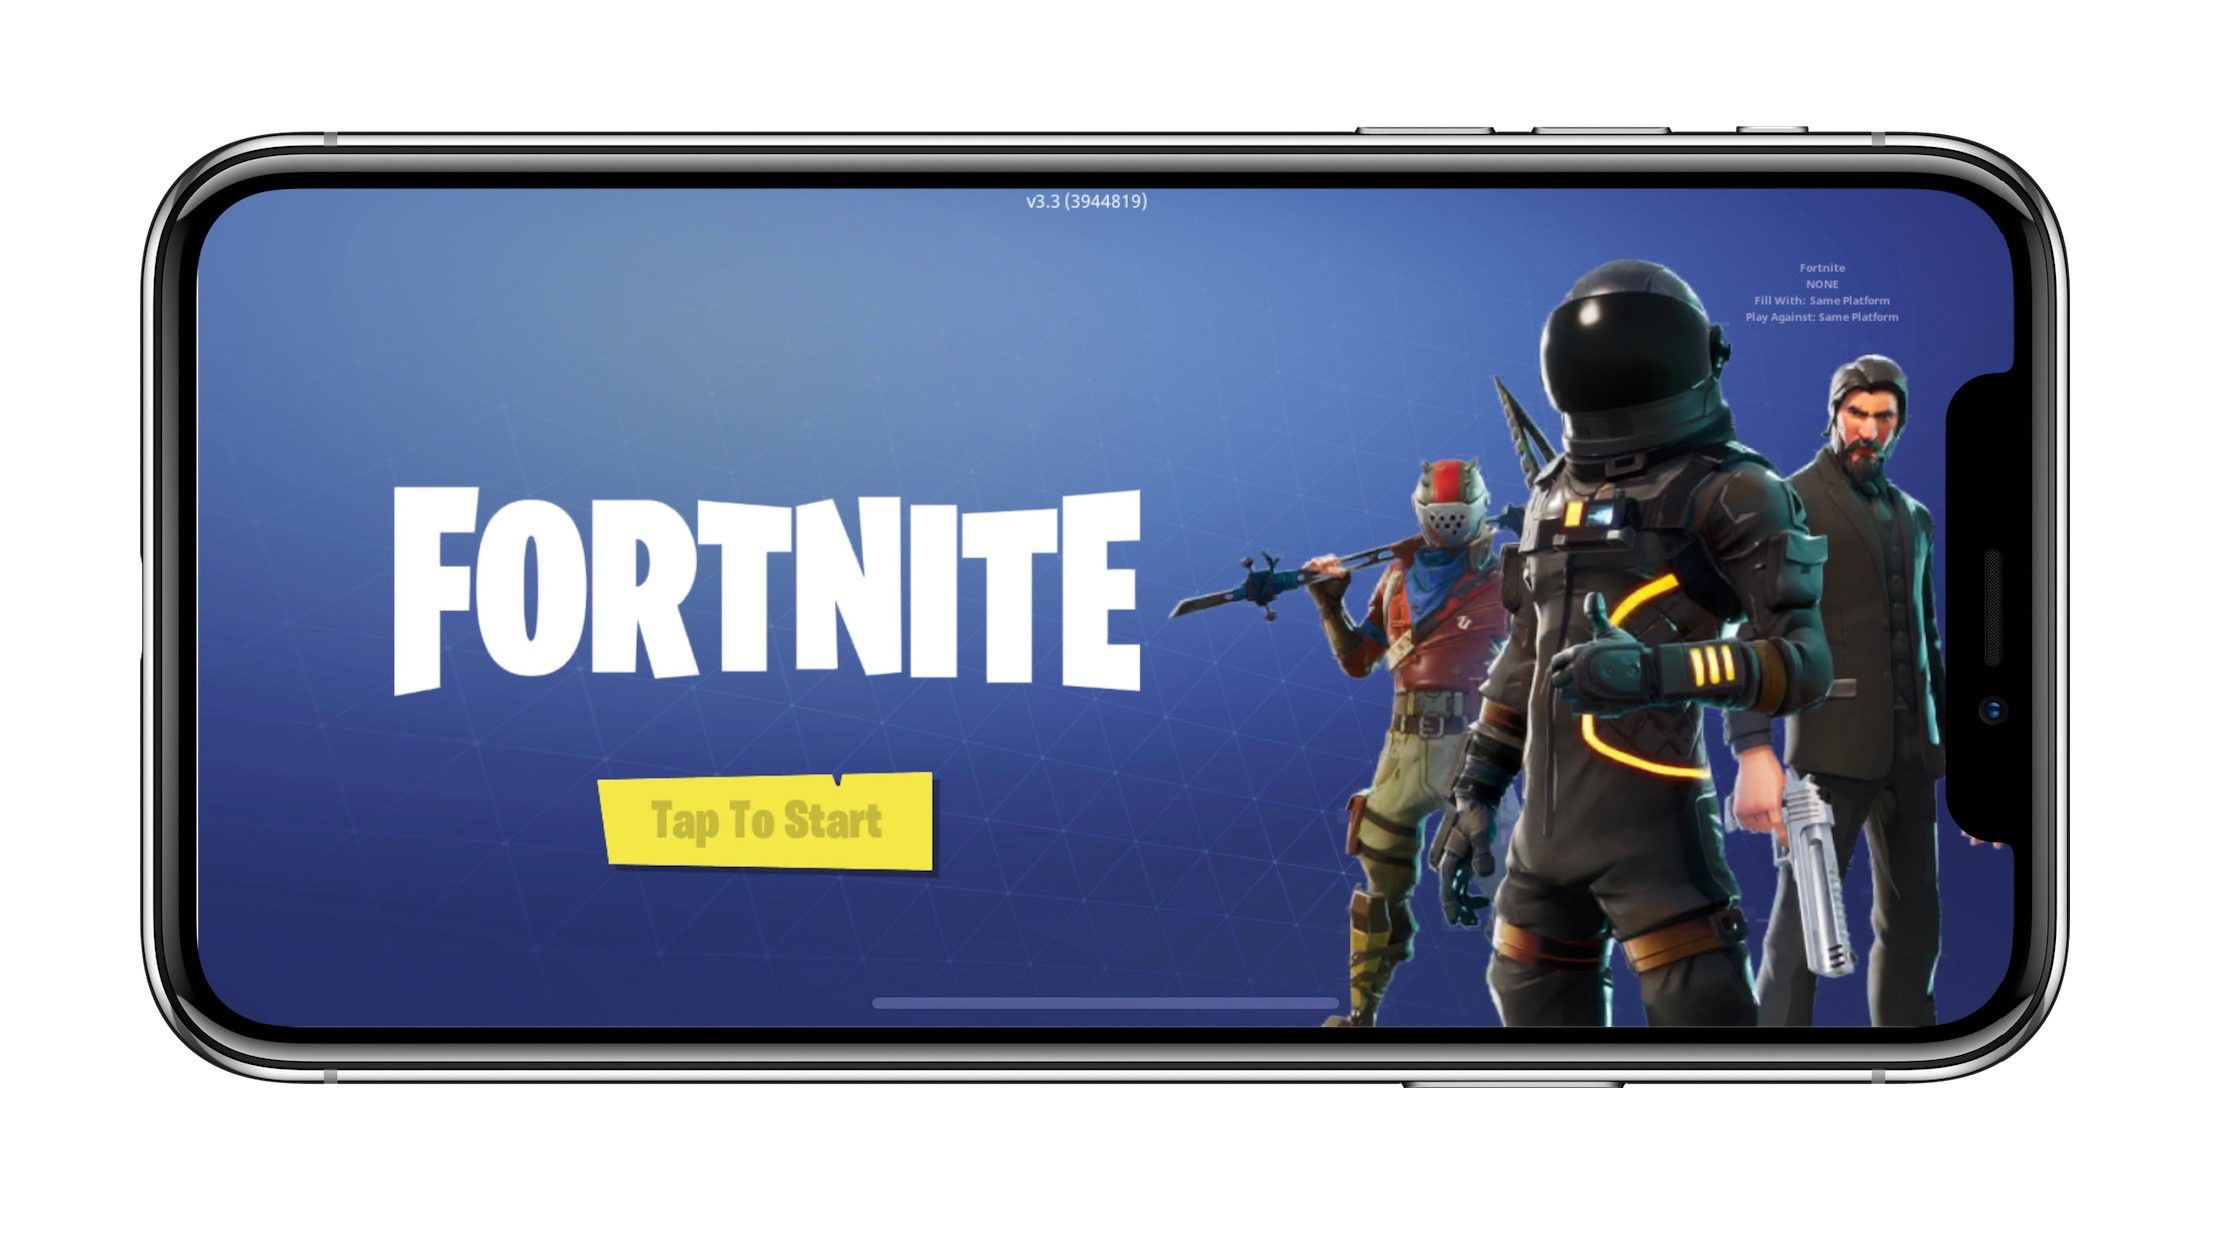 Judge denies preliminary injunction to Epic and Fortnite will remain banned from App Store [U] – 9to5Mac